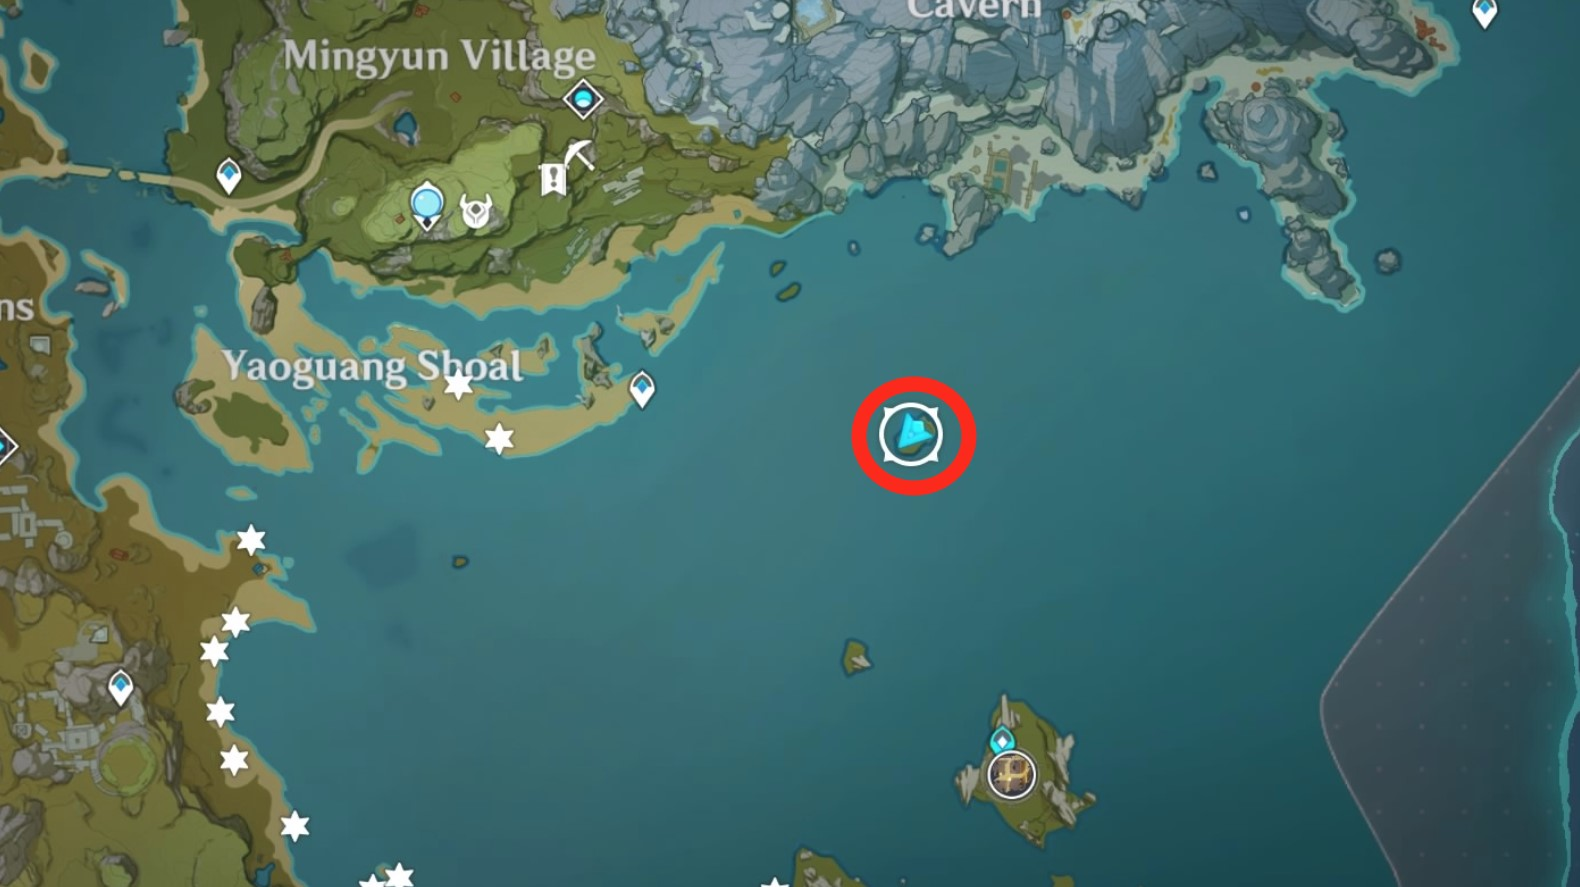 Where is the island with the heart